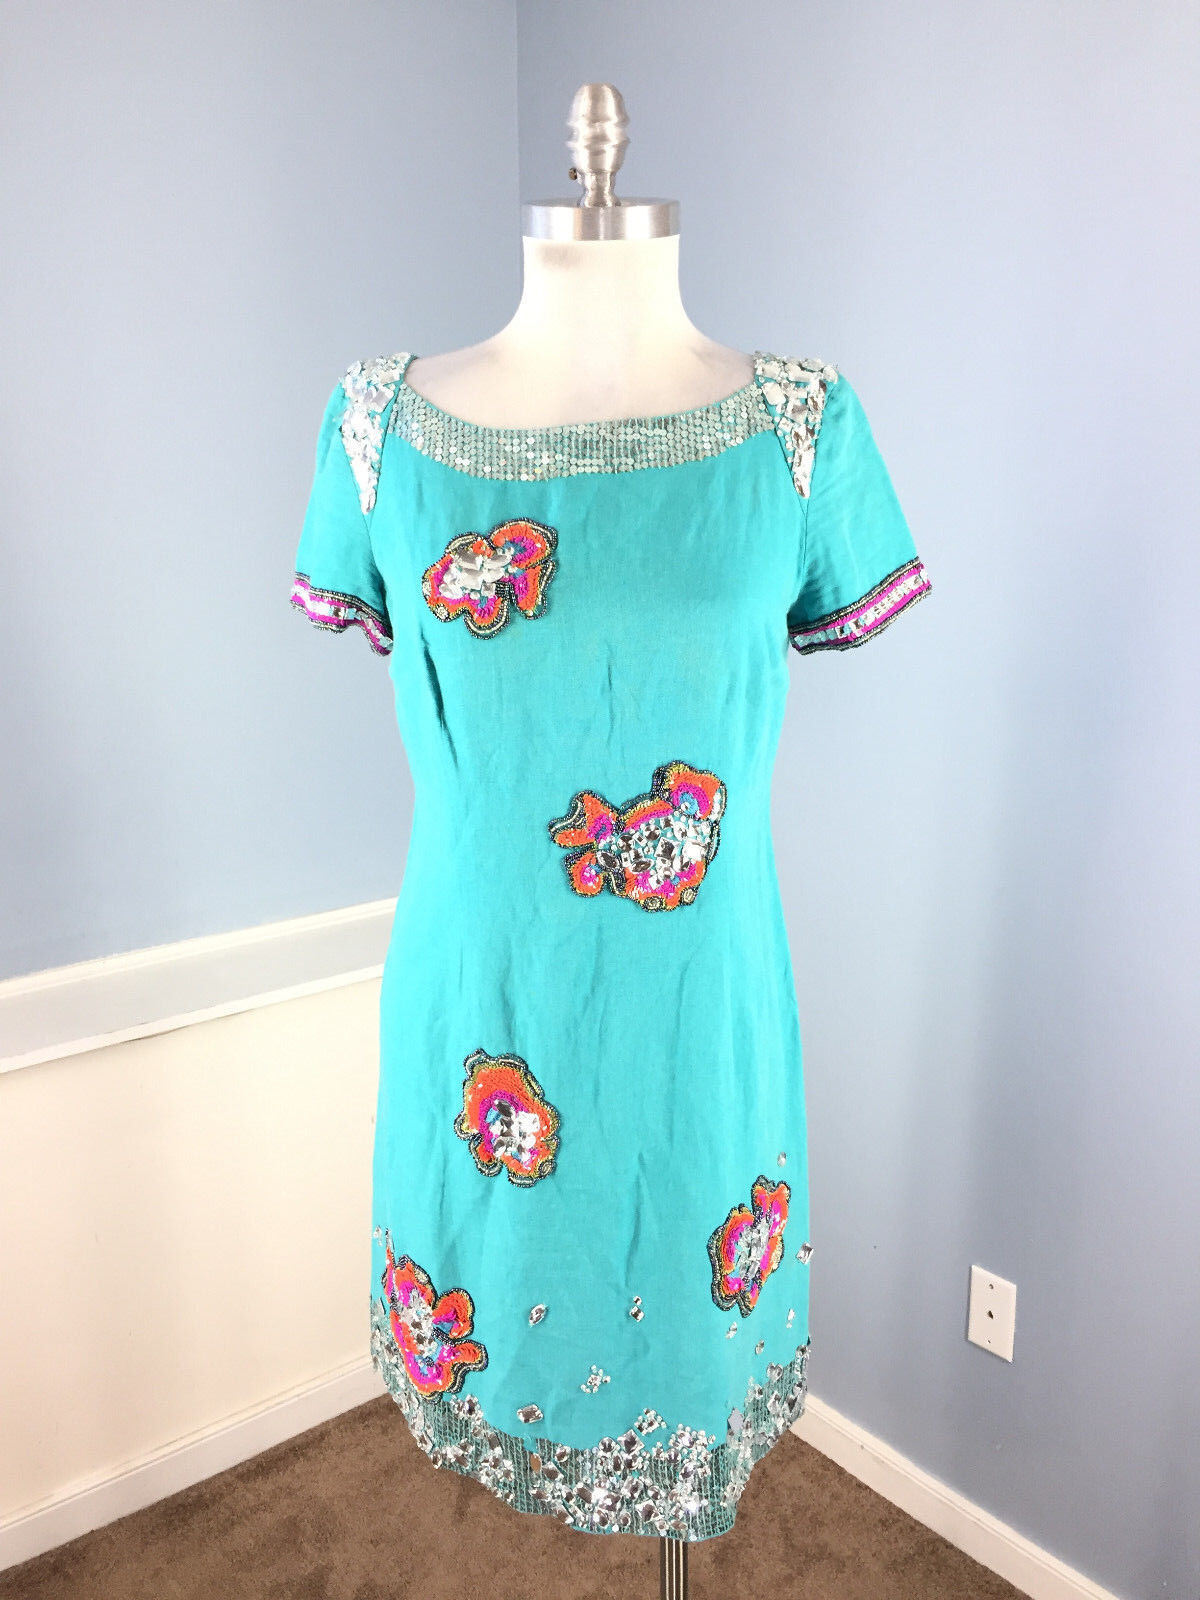 French Connection S 6 8 Lyndsey Linen Turquoise Sequin Floral dress Embellished